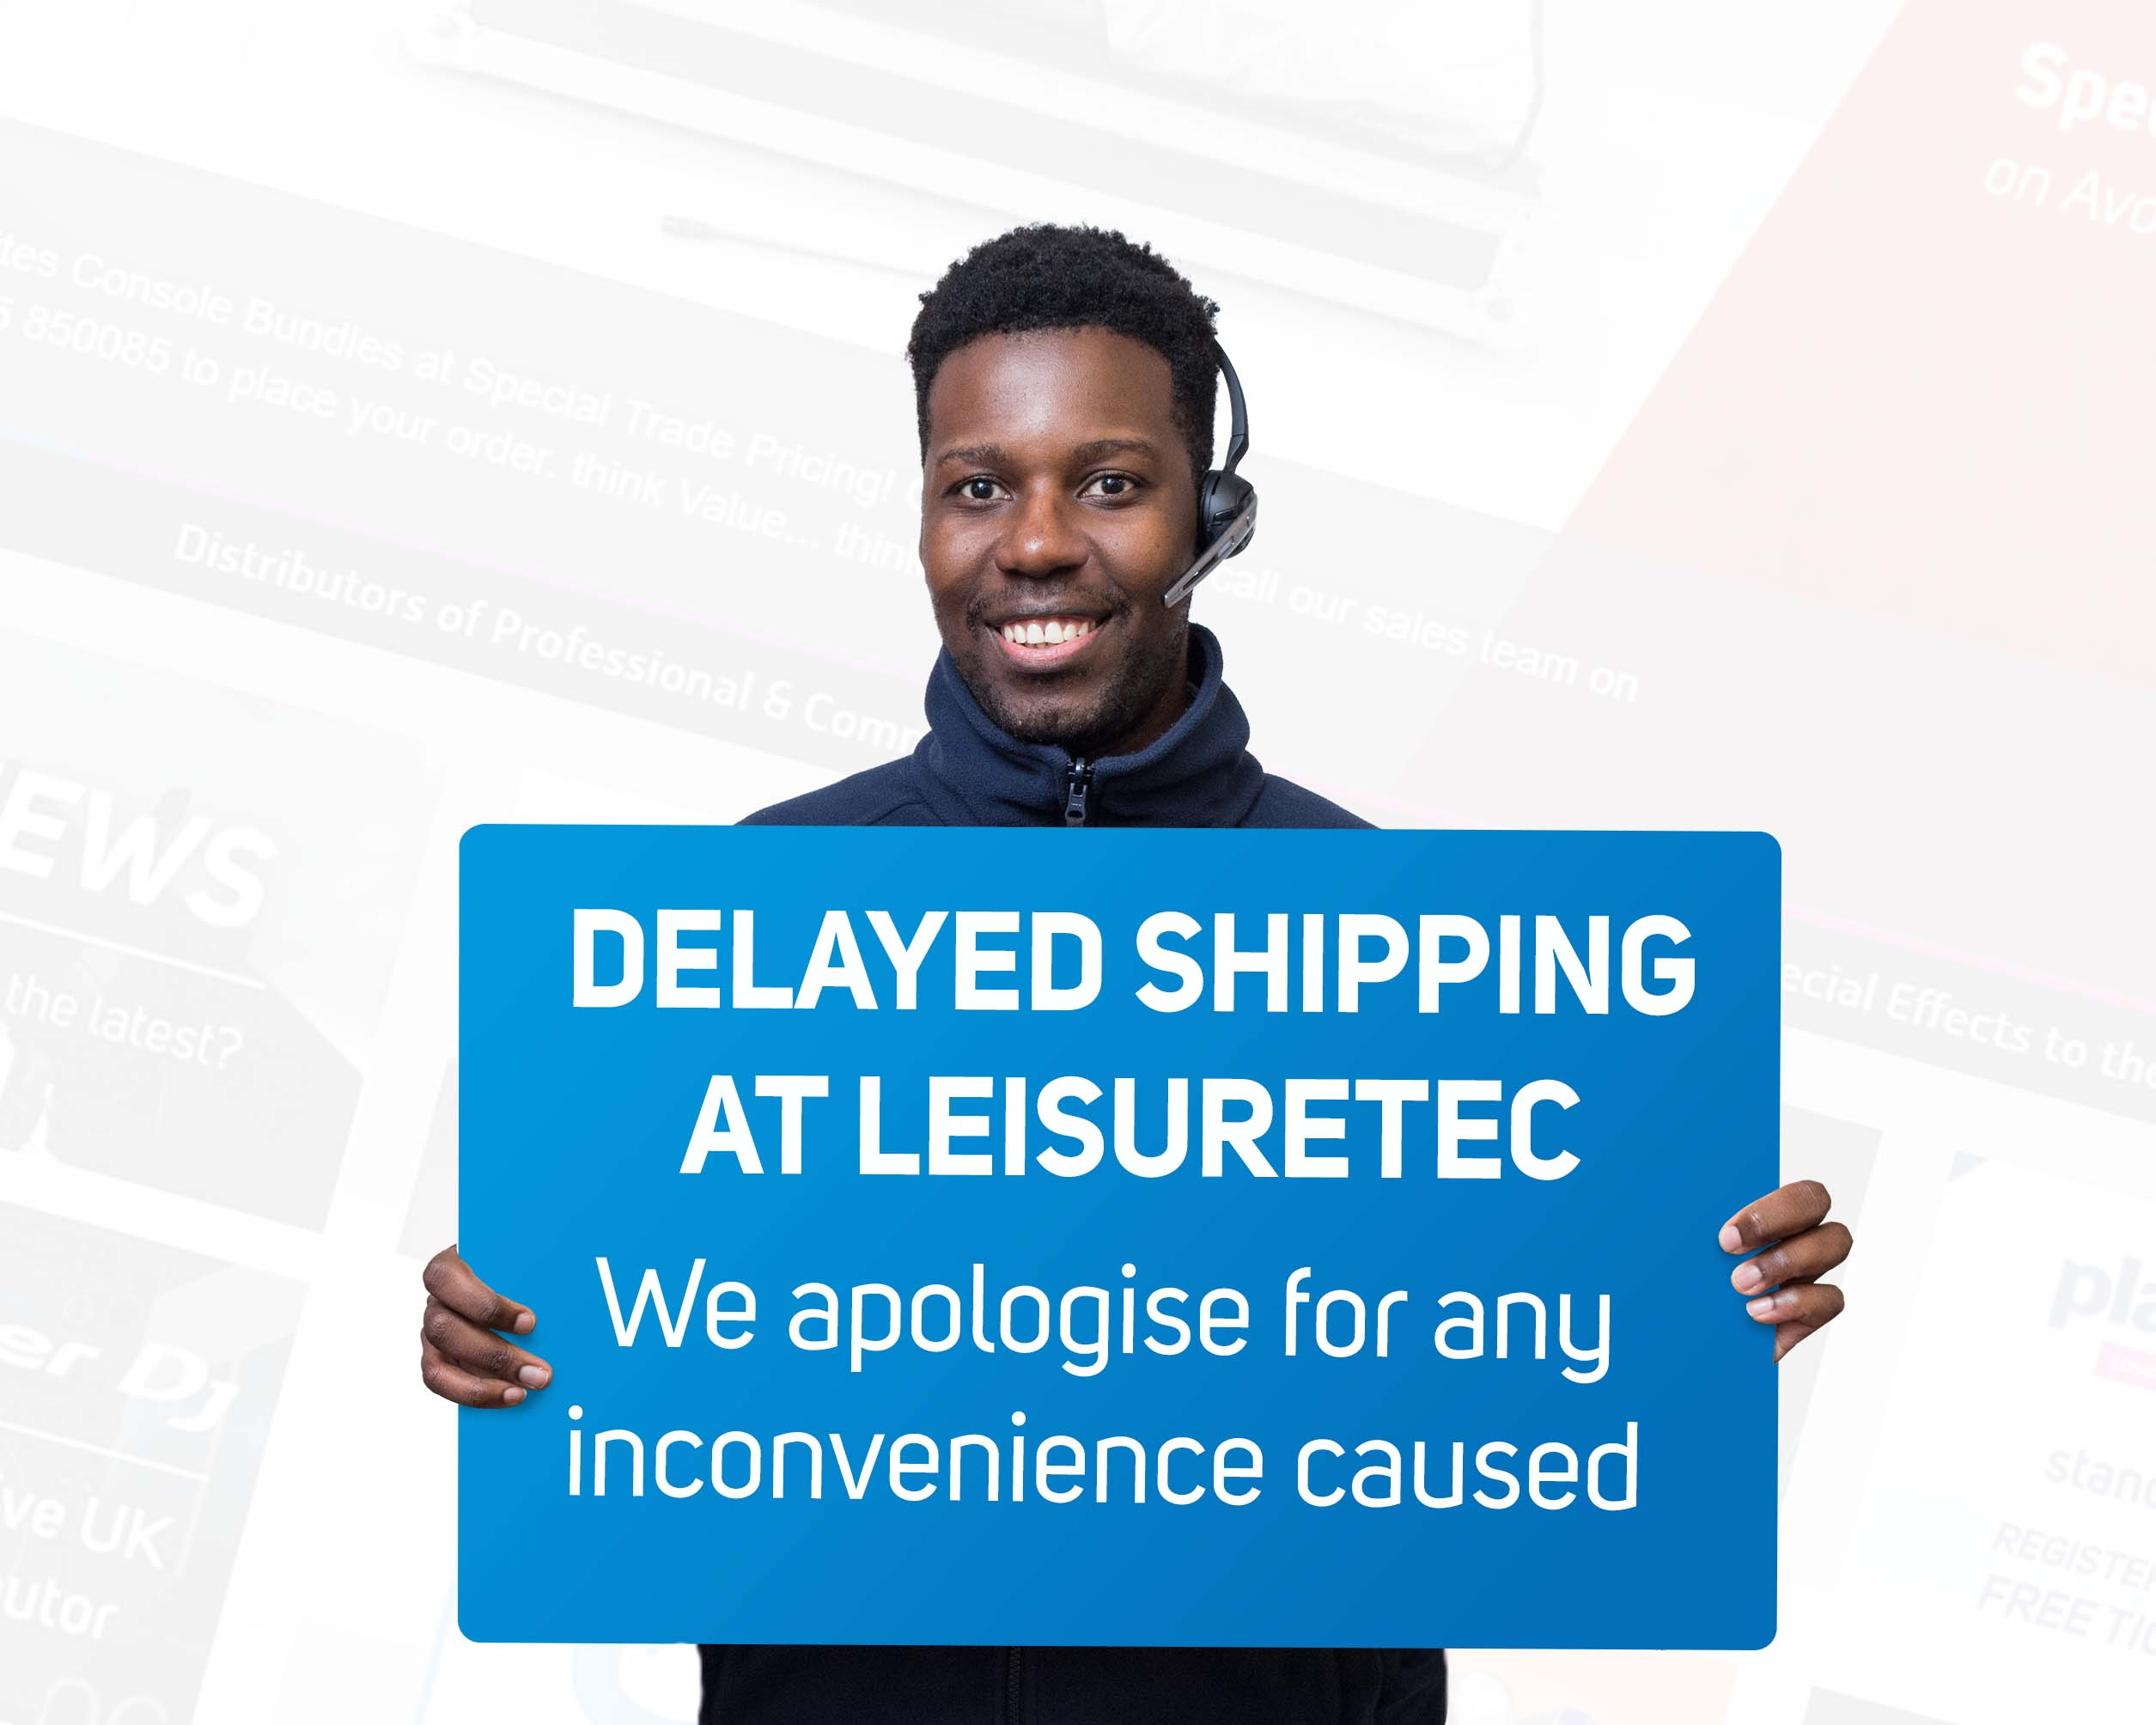 **RESOLVED - DELAYED SHIPPING AT LEISURETEC**